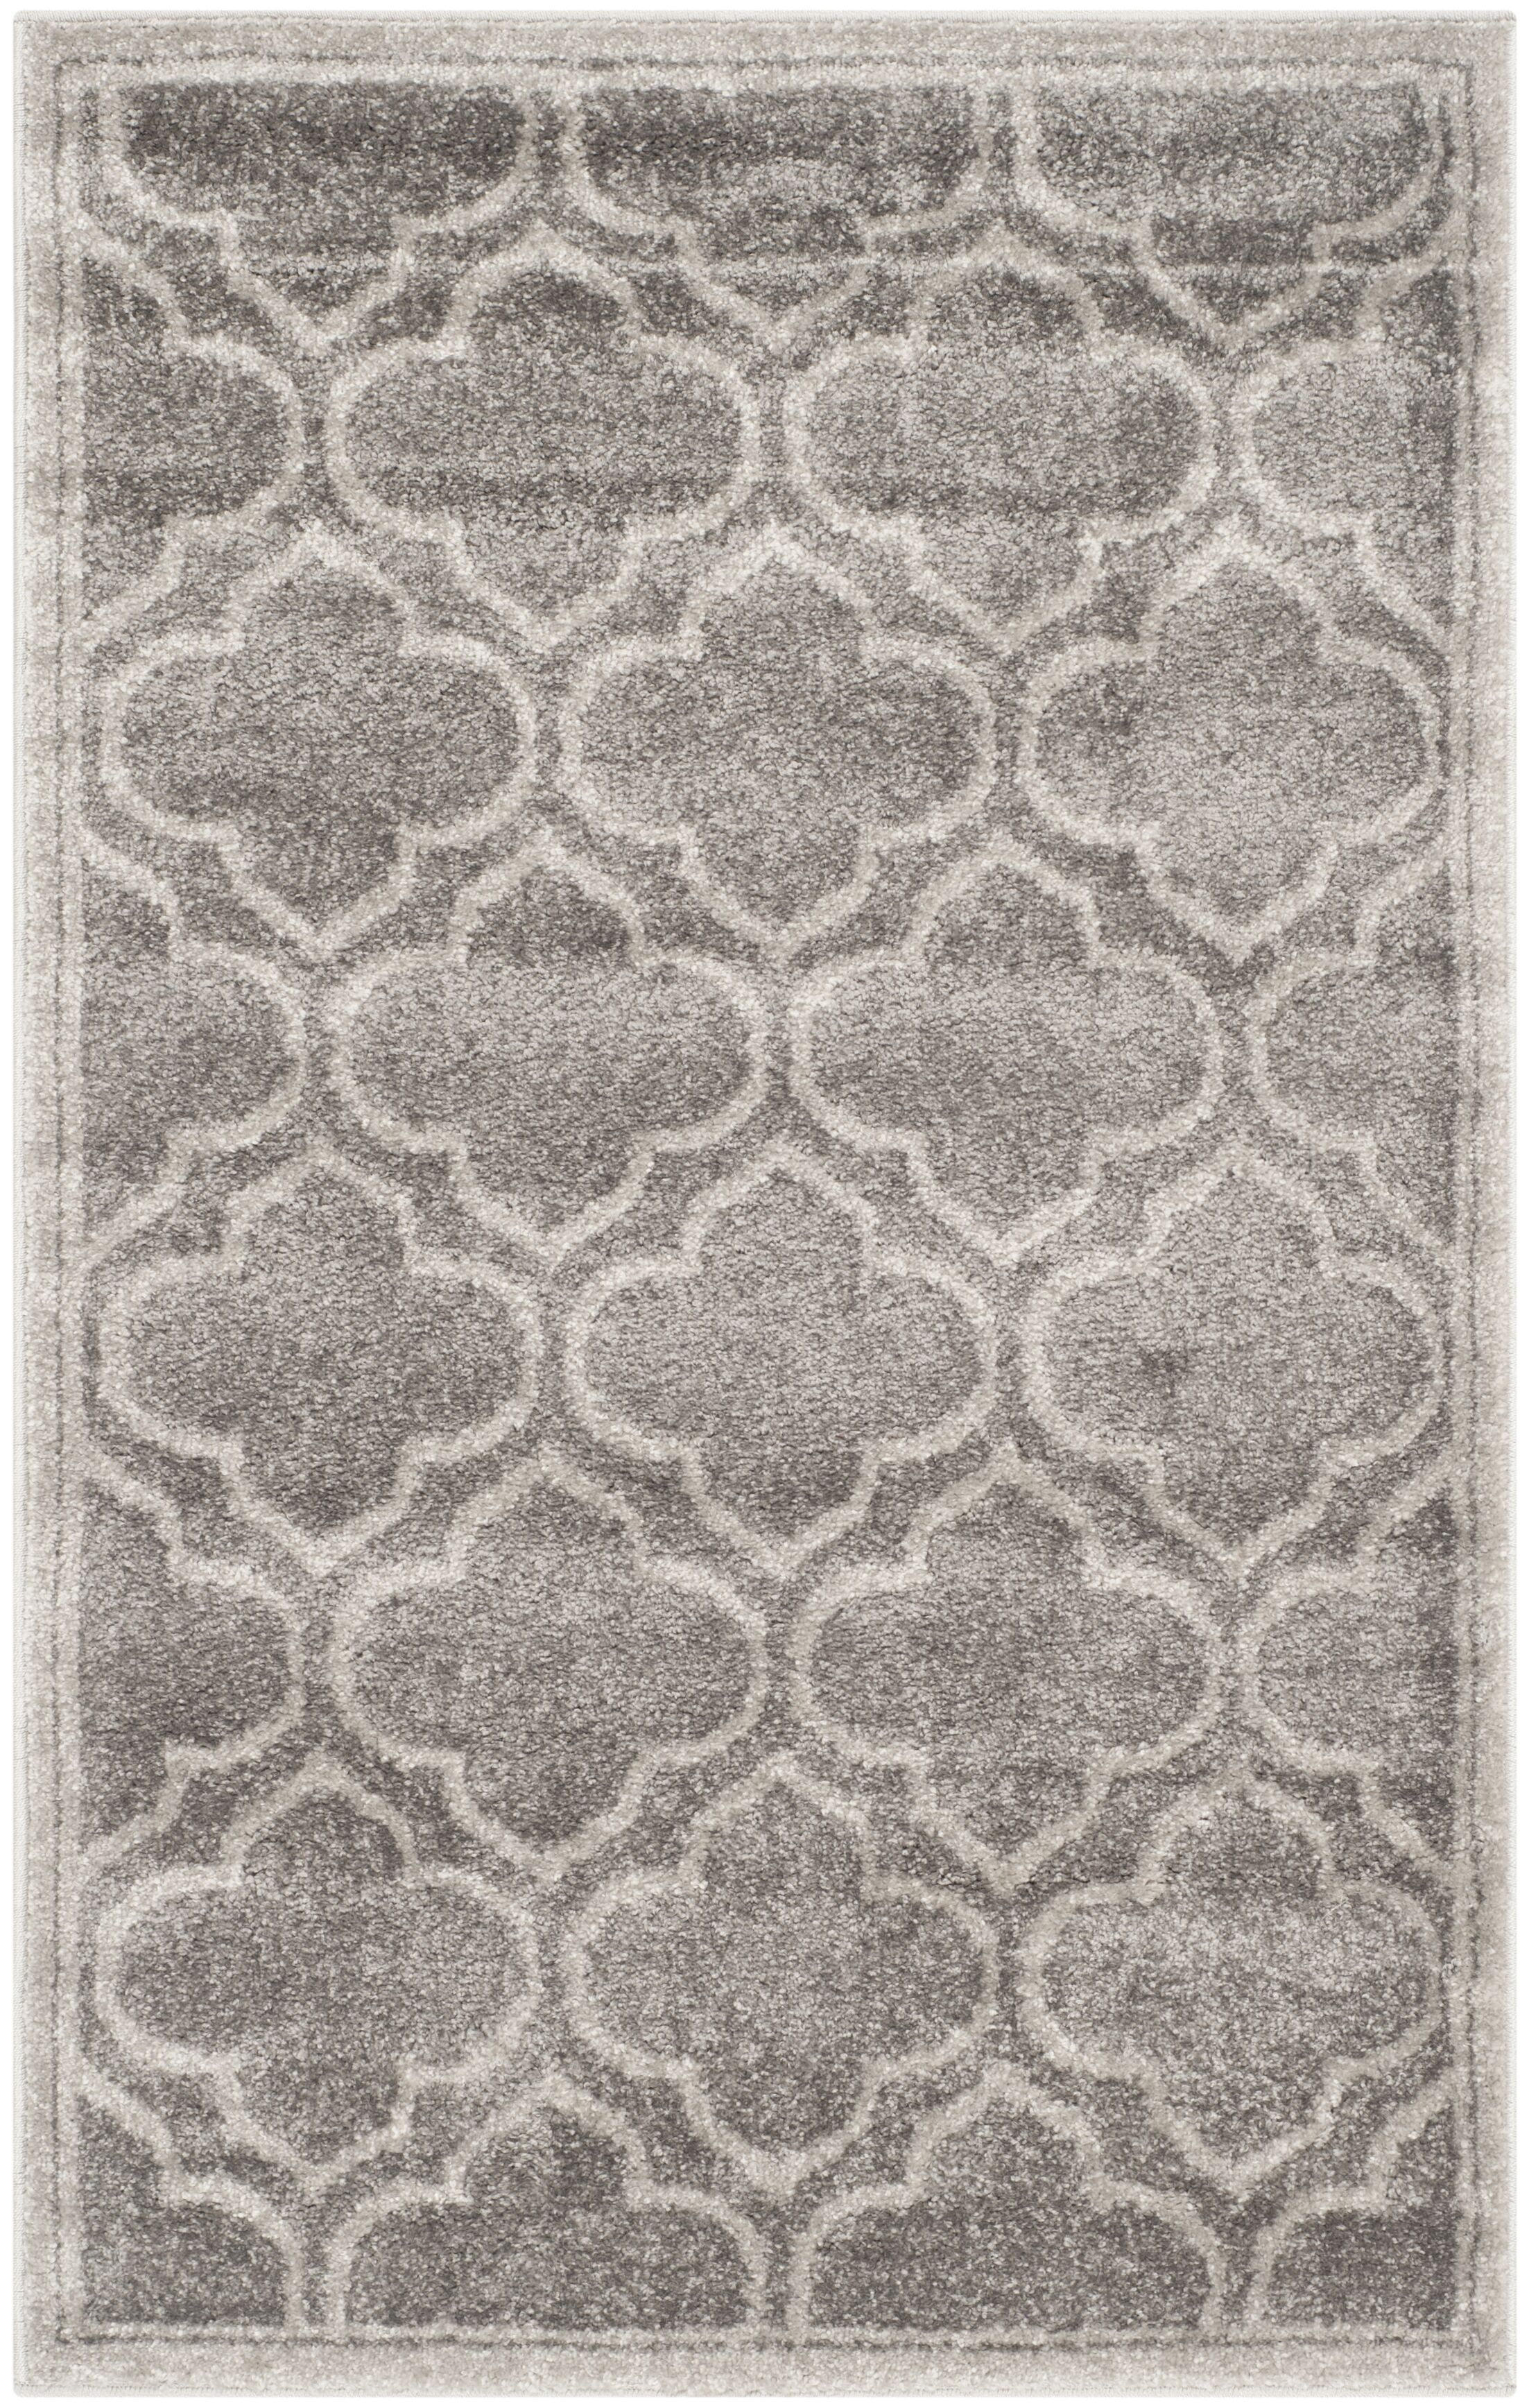 Maritza Gray Outdoor Area Rug Rug Size: Rectangle 6' x 9'